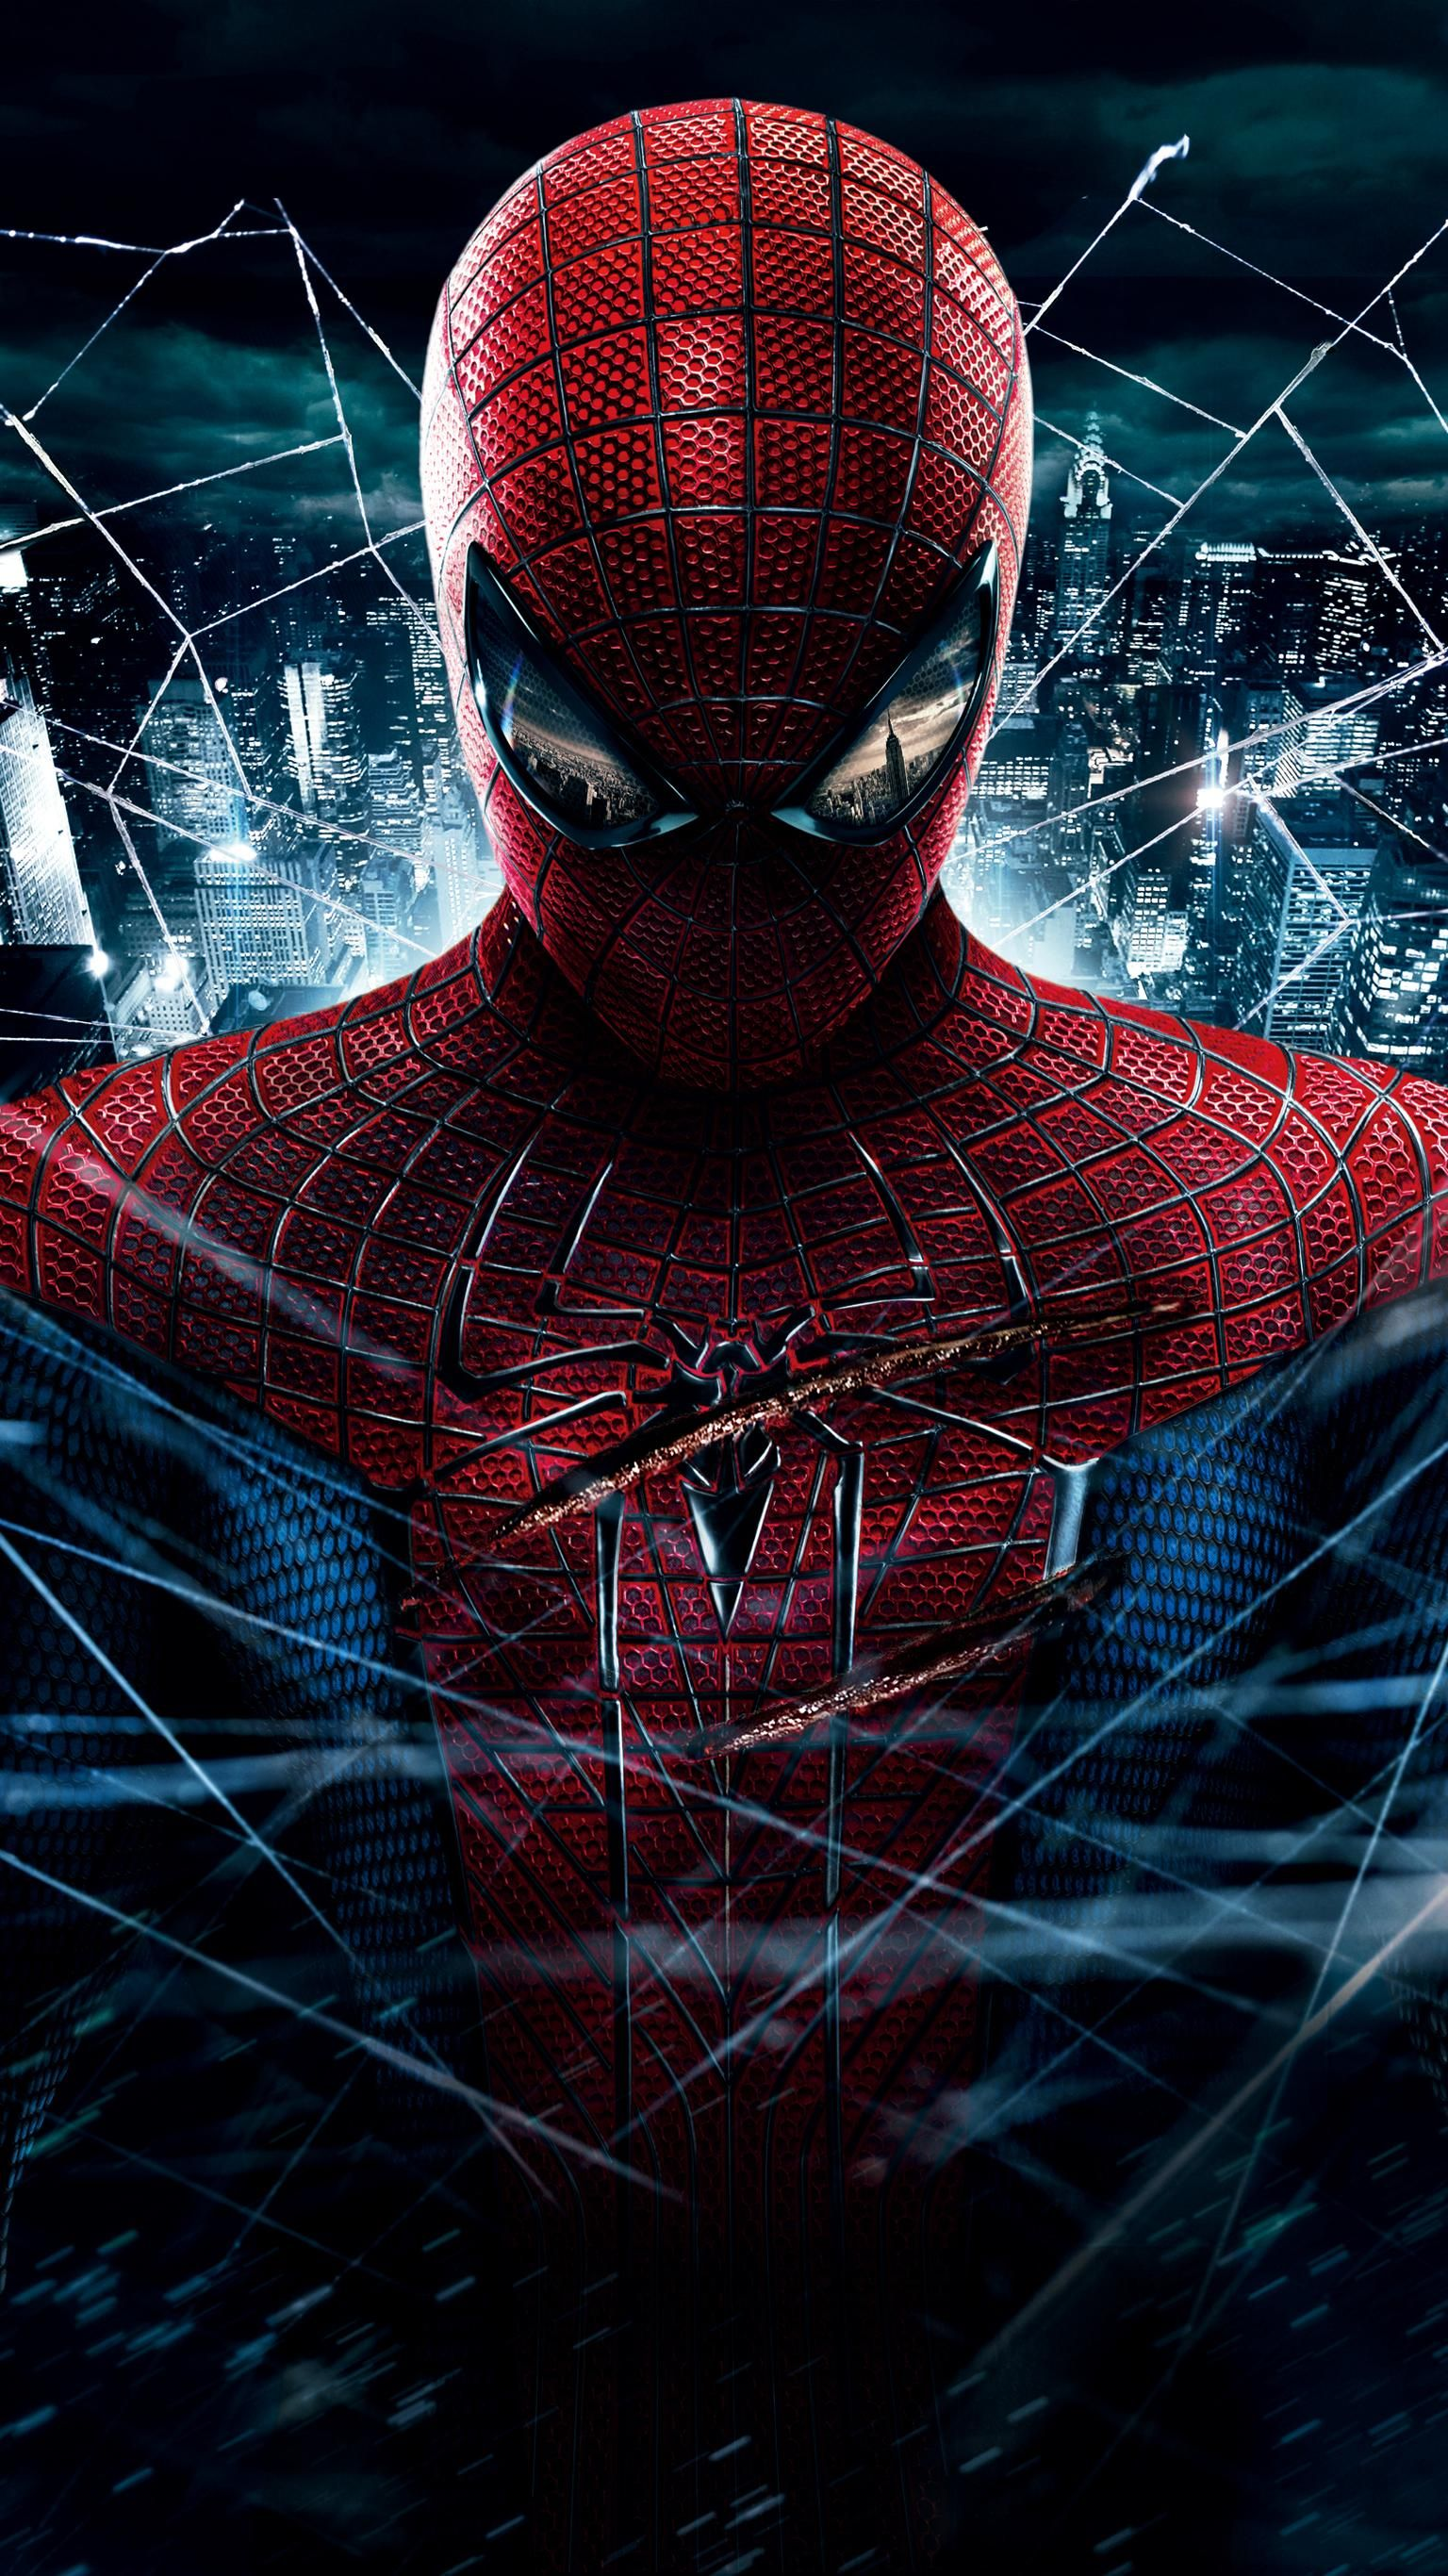 The Amazing Spider Man 2012 Phone Wallpaper Moviemania Amazing Spiderman Movie Spiderman Amazing Spiderman